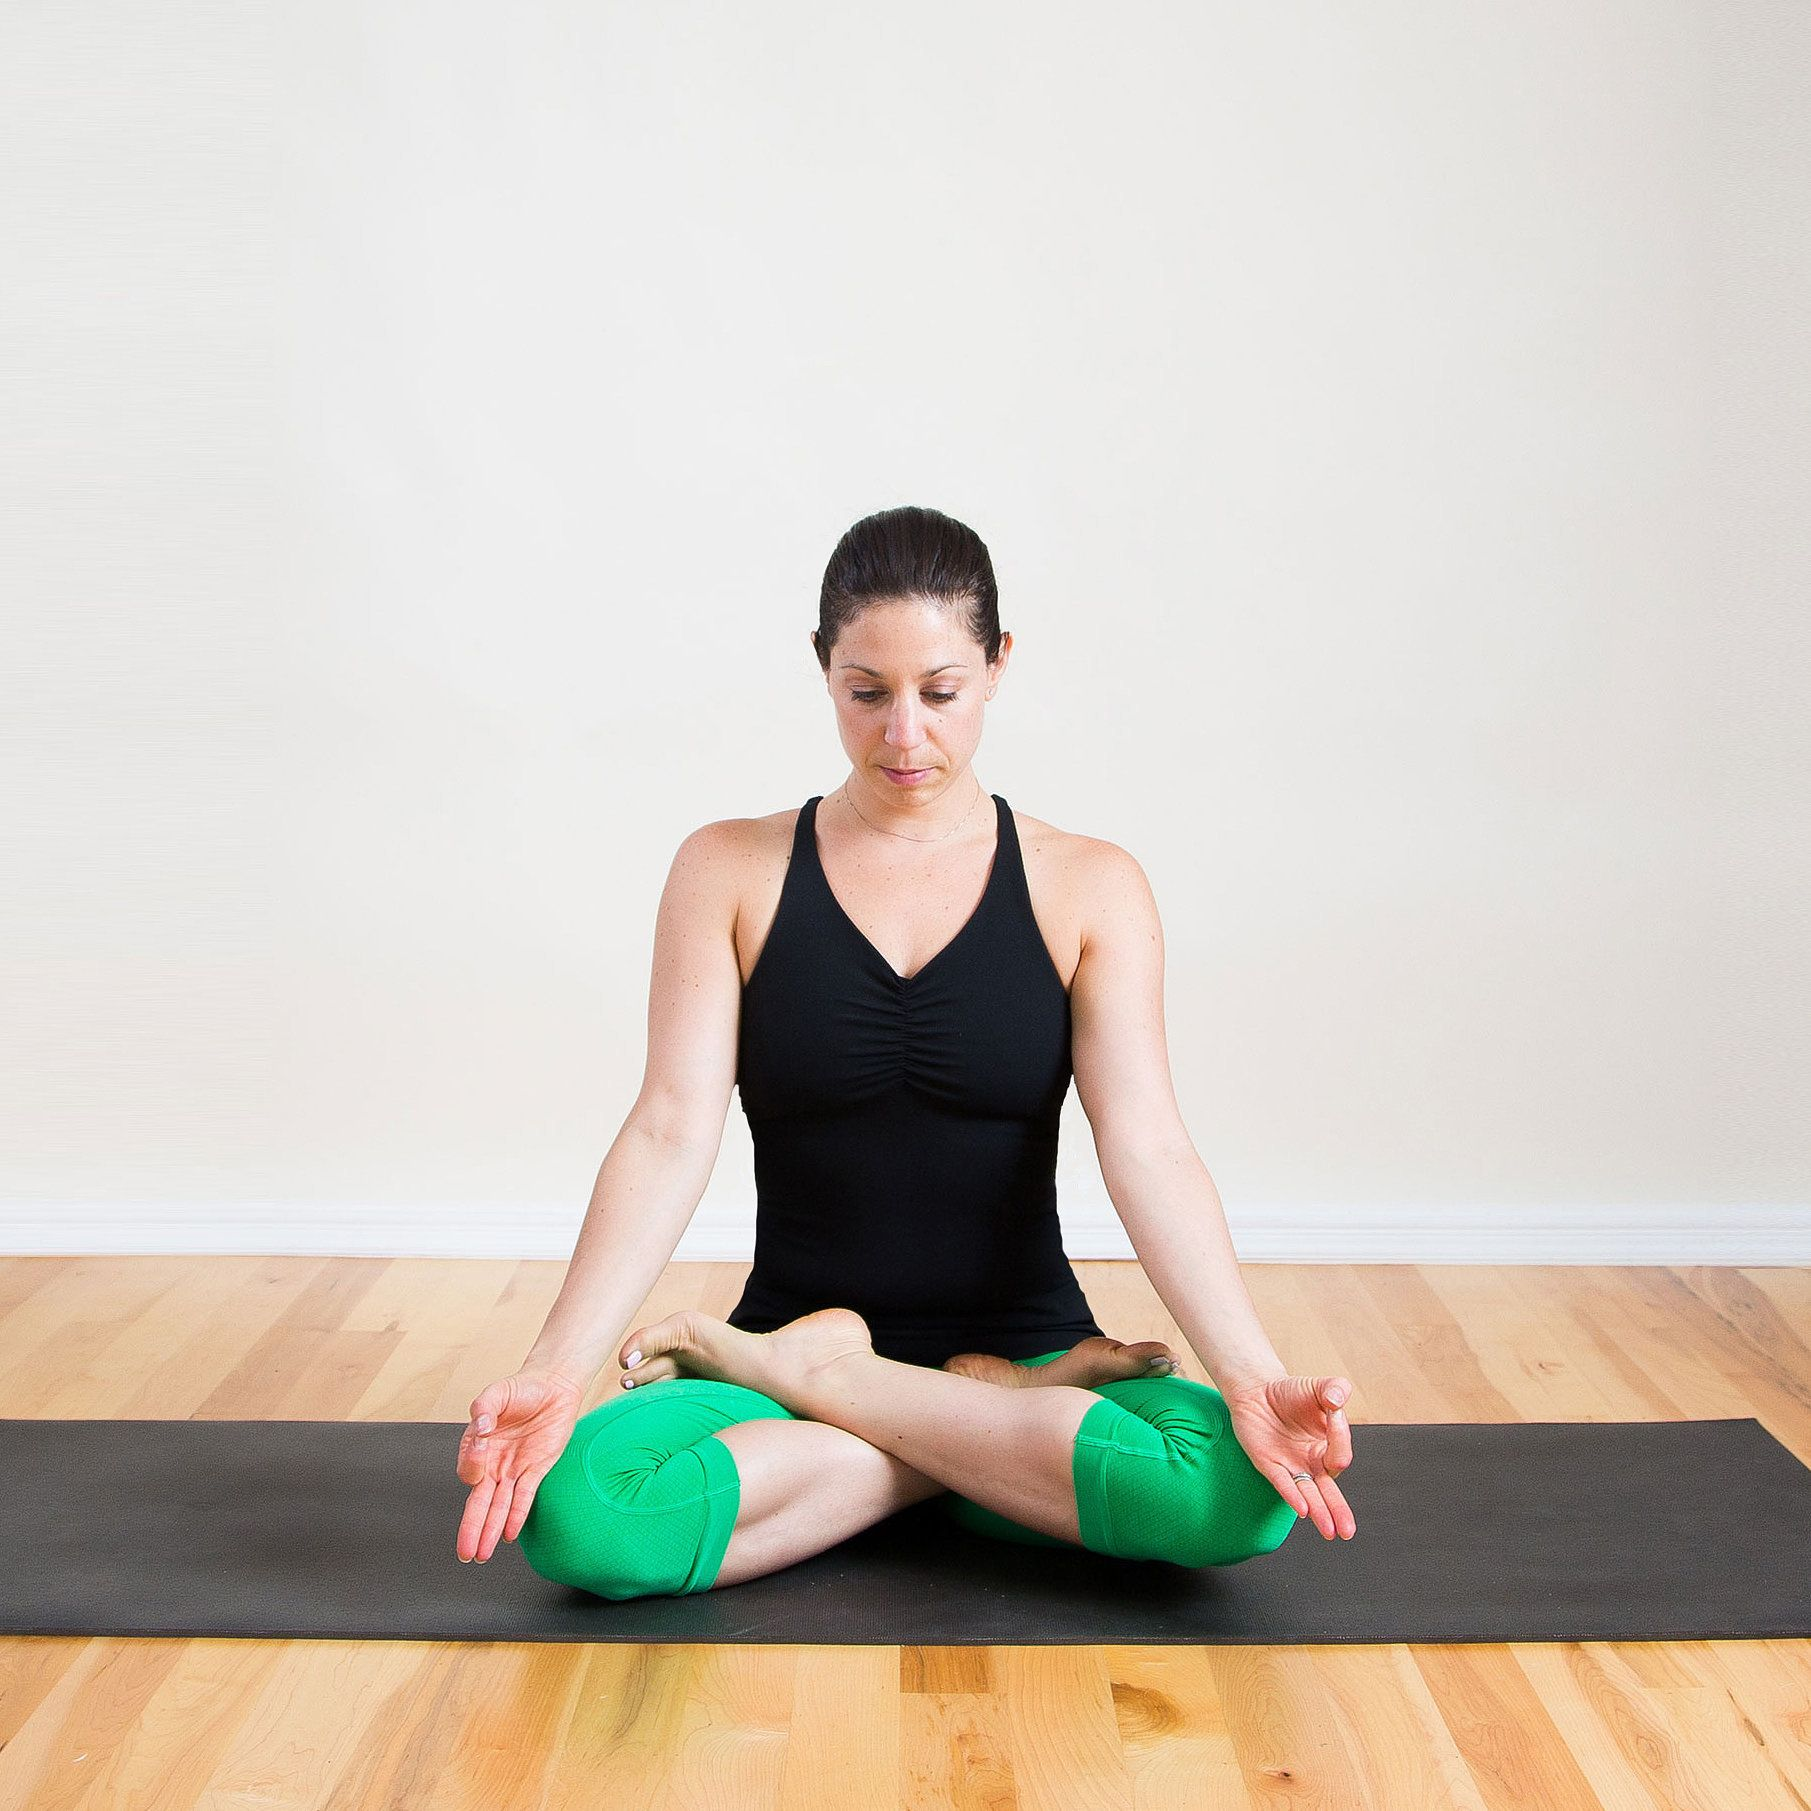 17++ Exercises for lotus position ideas